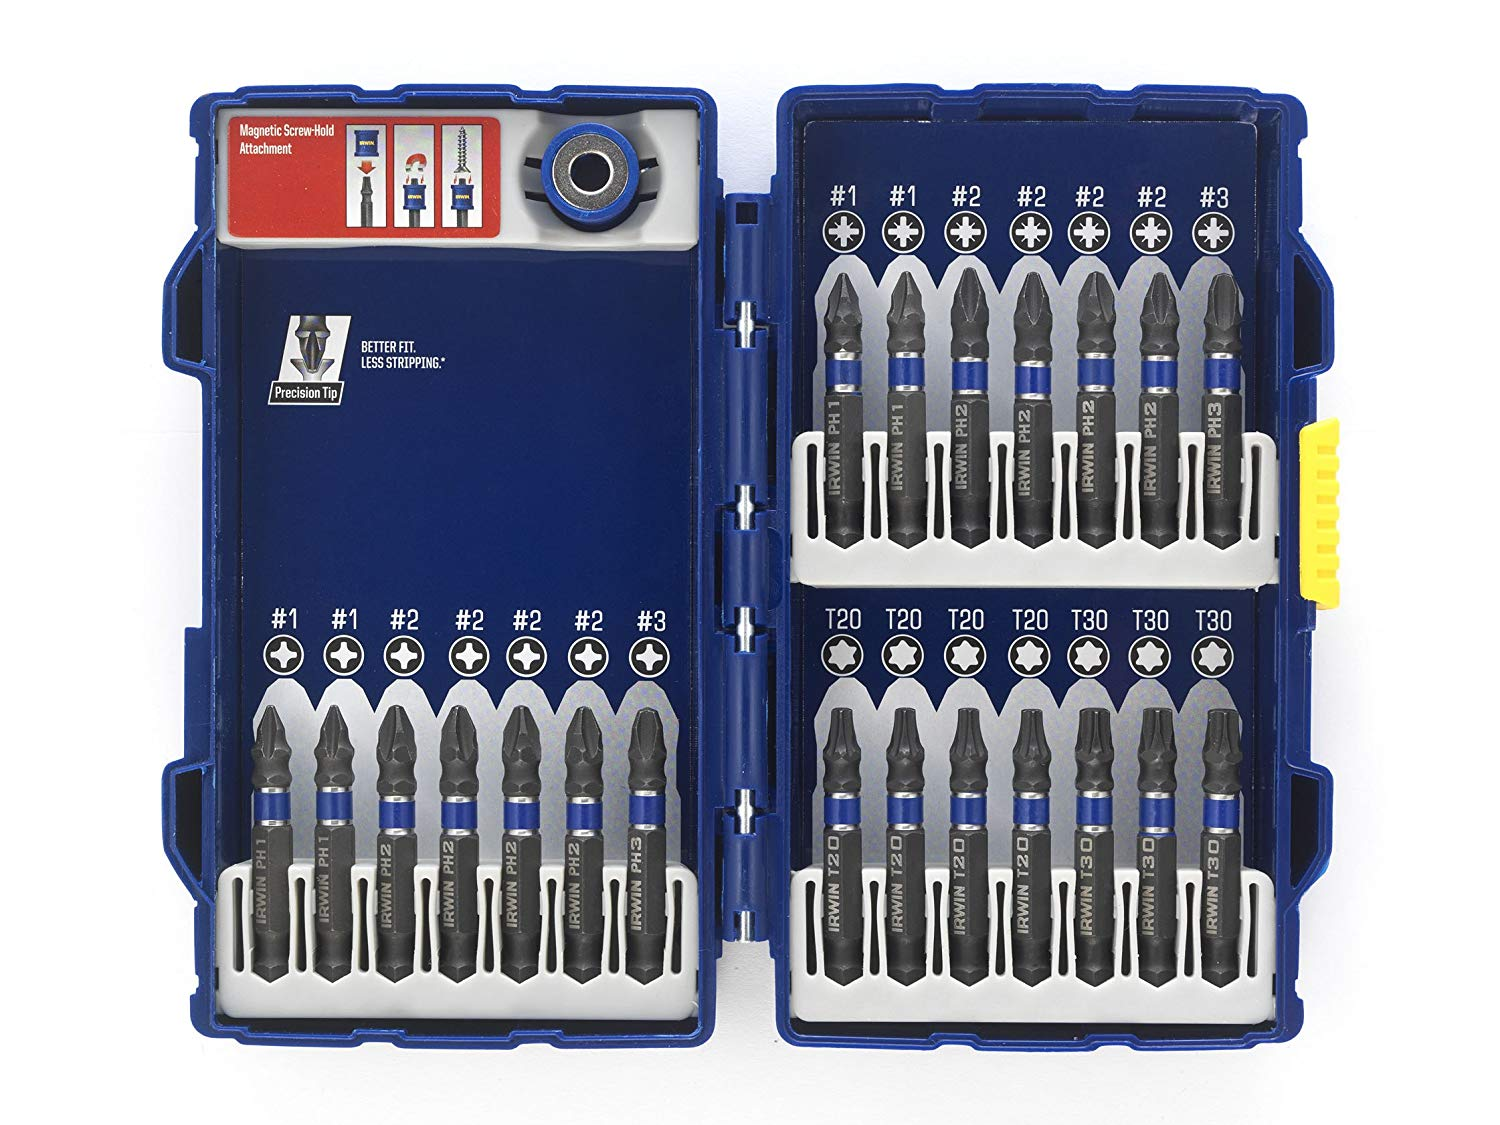 IRWIN 1923436 - Impact Screwdriver Bit 22Pcs